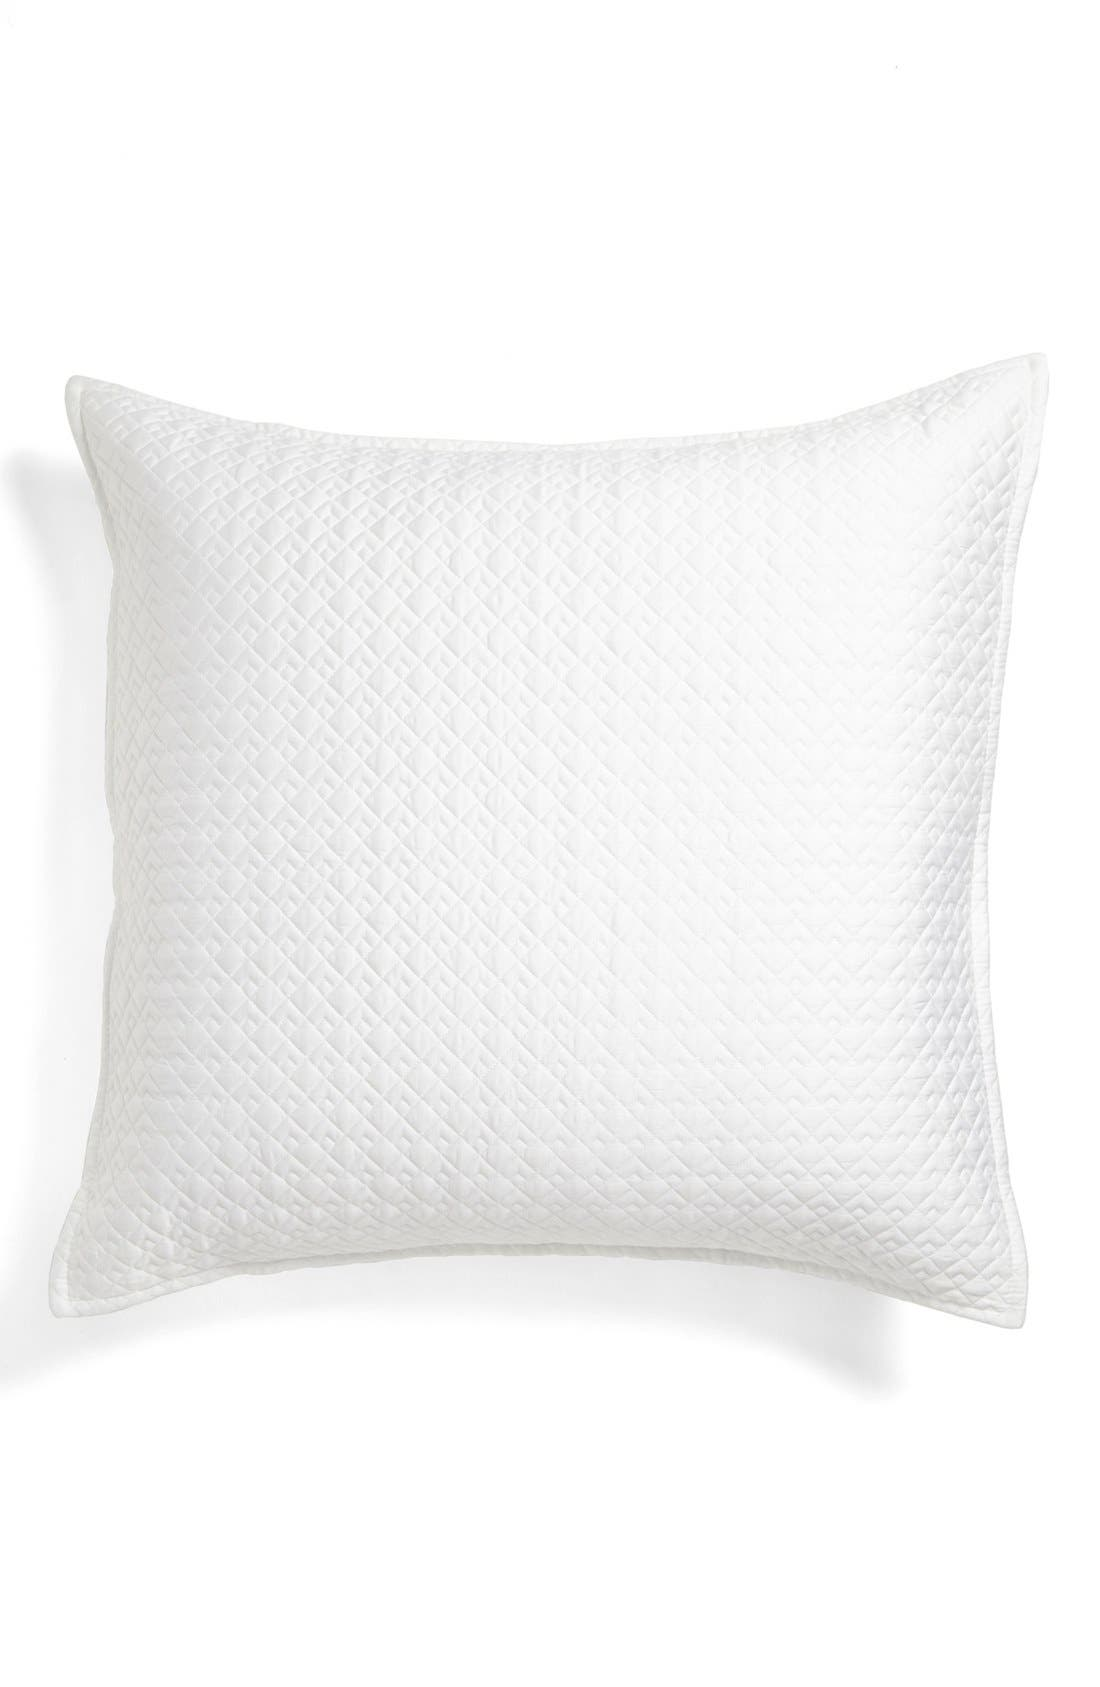 Alternate Image 1 Selected - Vera Wang 'Double Diamond' Quilted Euro Sham